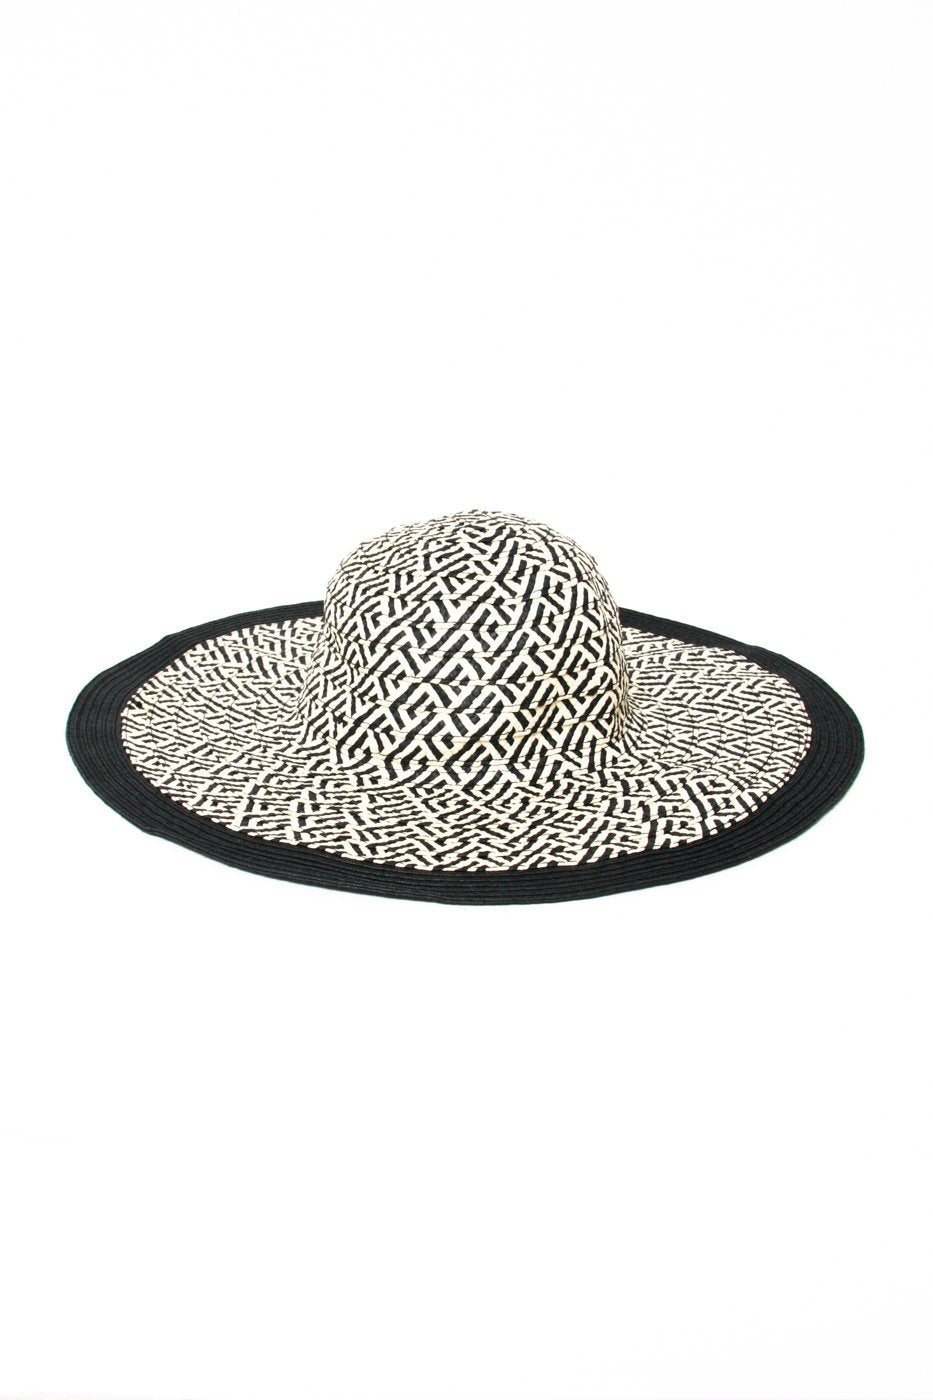 0474_GAP BLACK WHITE STRAW HAT // S-M